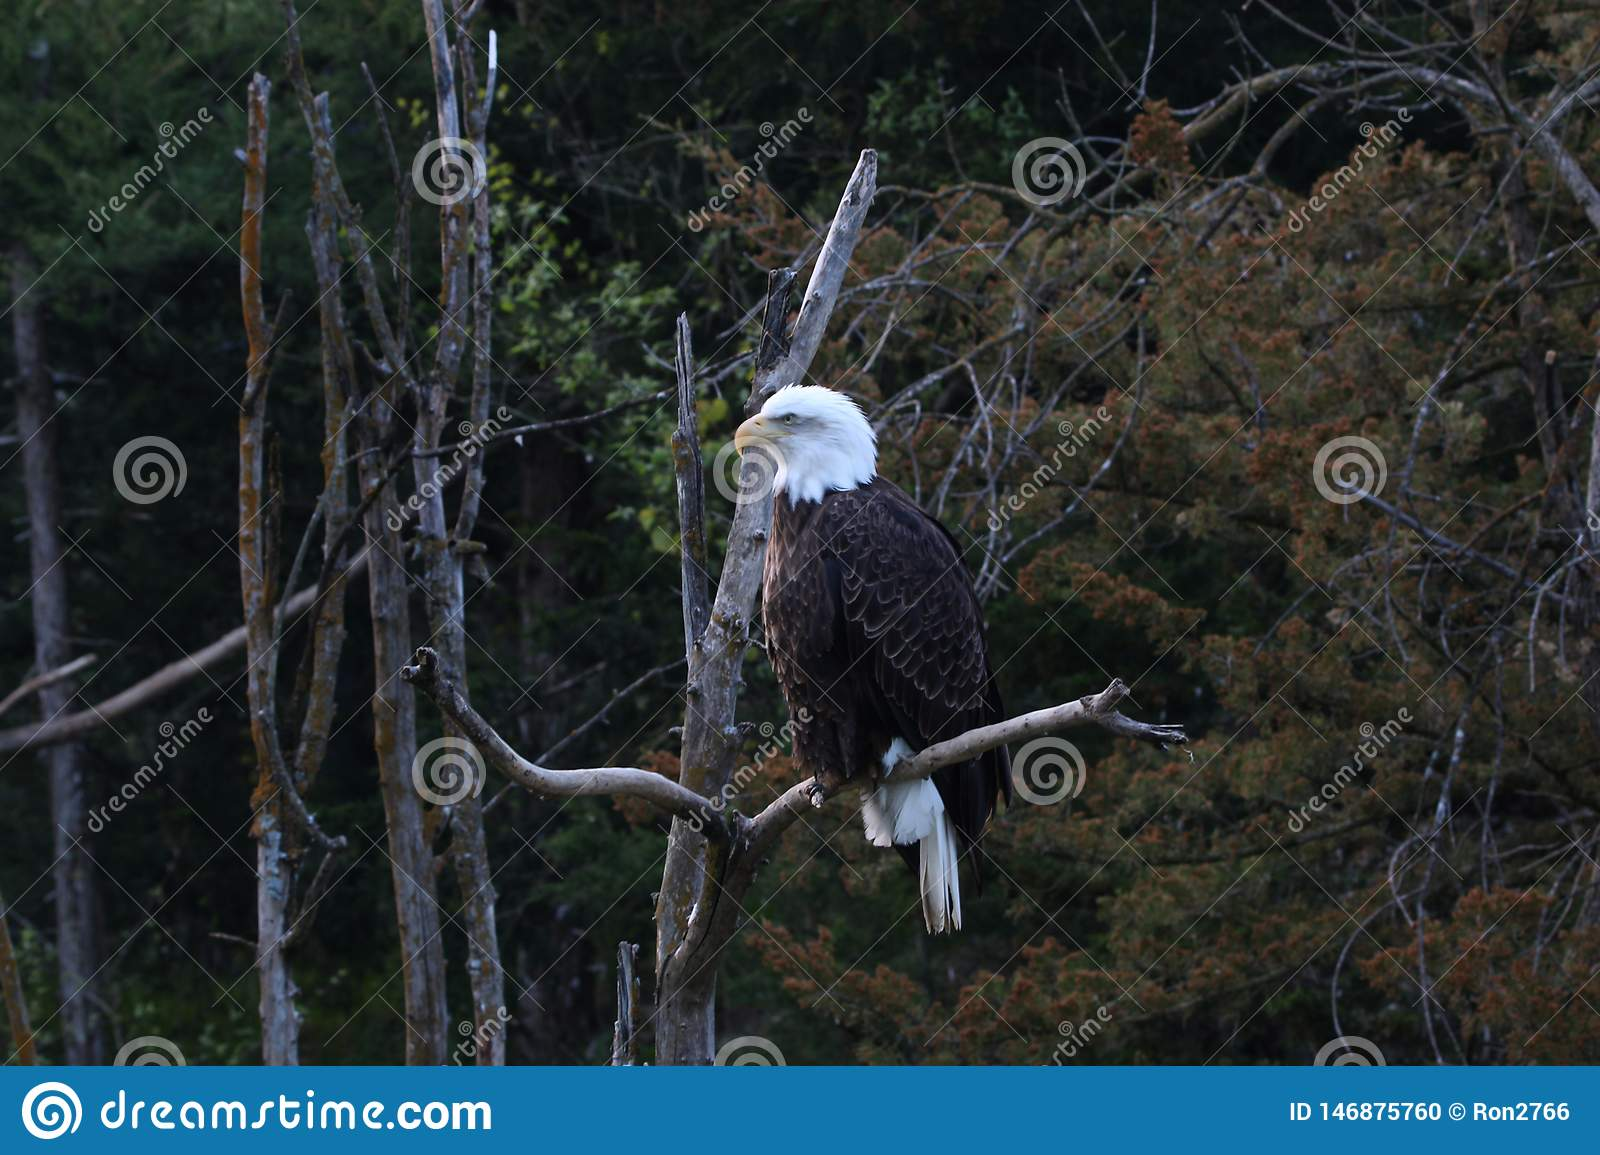 Bald eagles are large birds of prey native to North America.